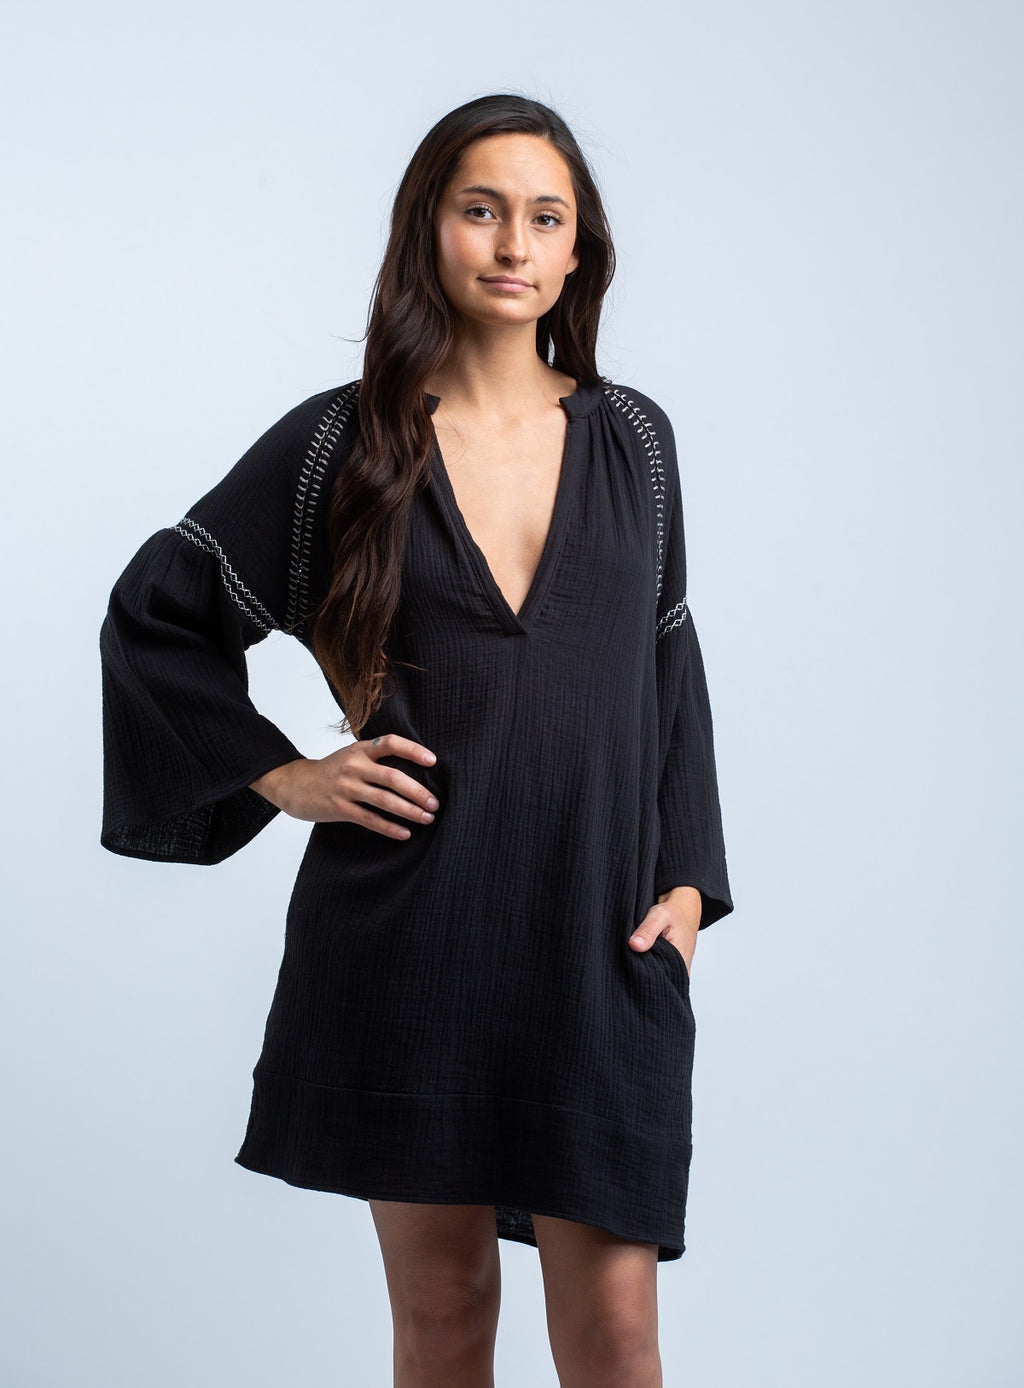 STILLWATER<br>The Embroider Benny Dress in Black - Trendy Fox Boutique